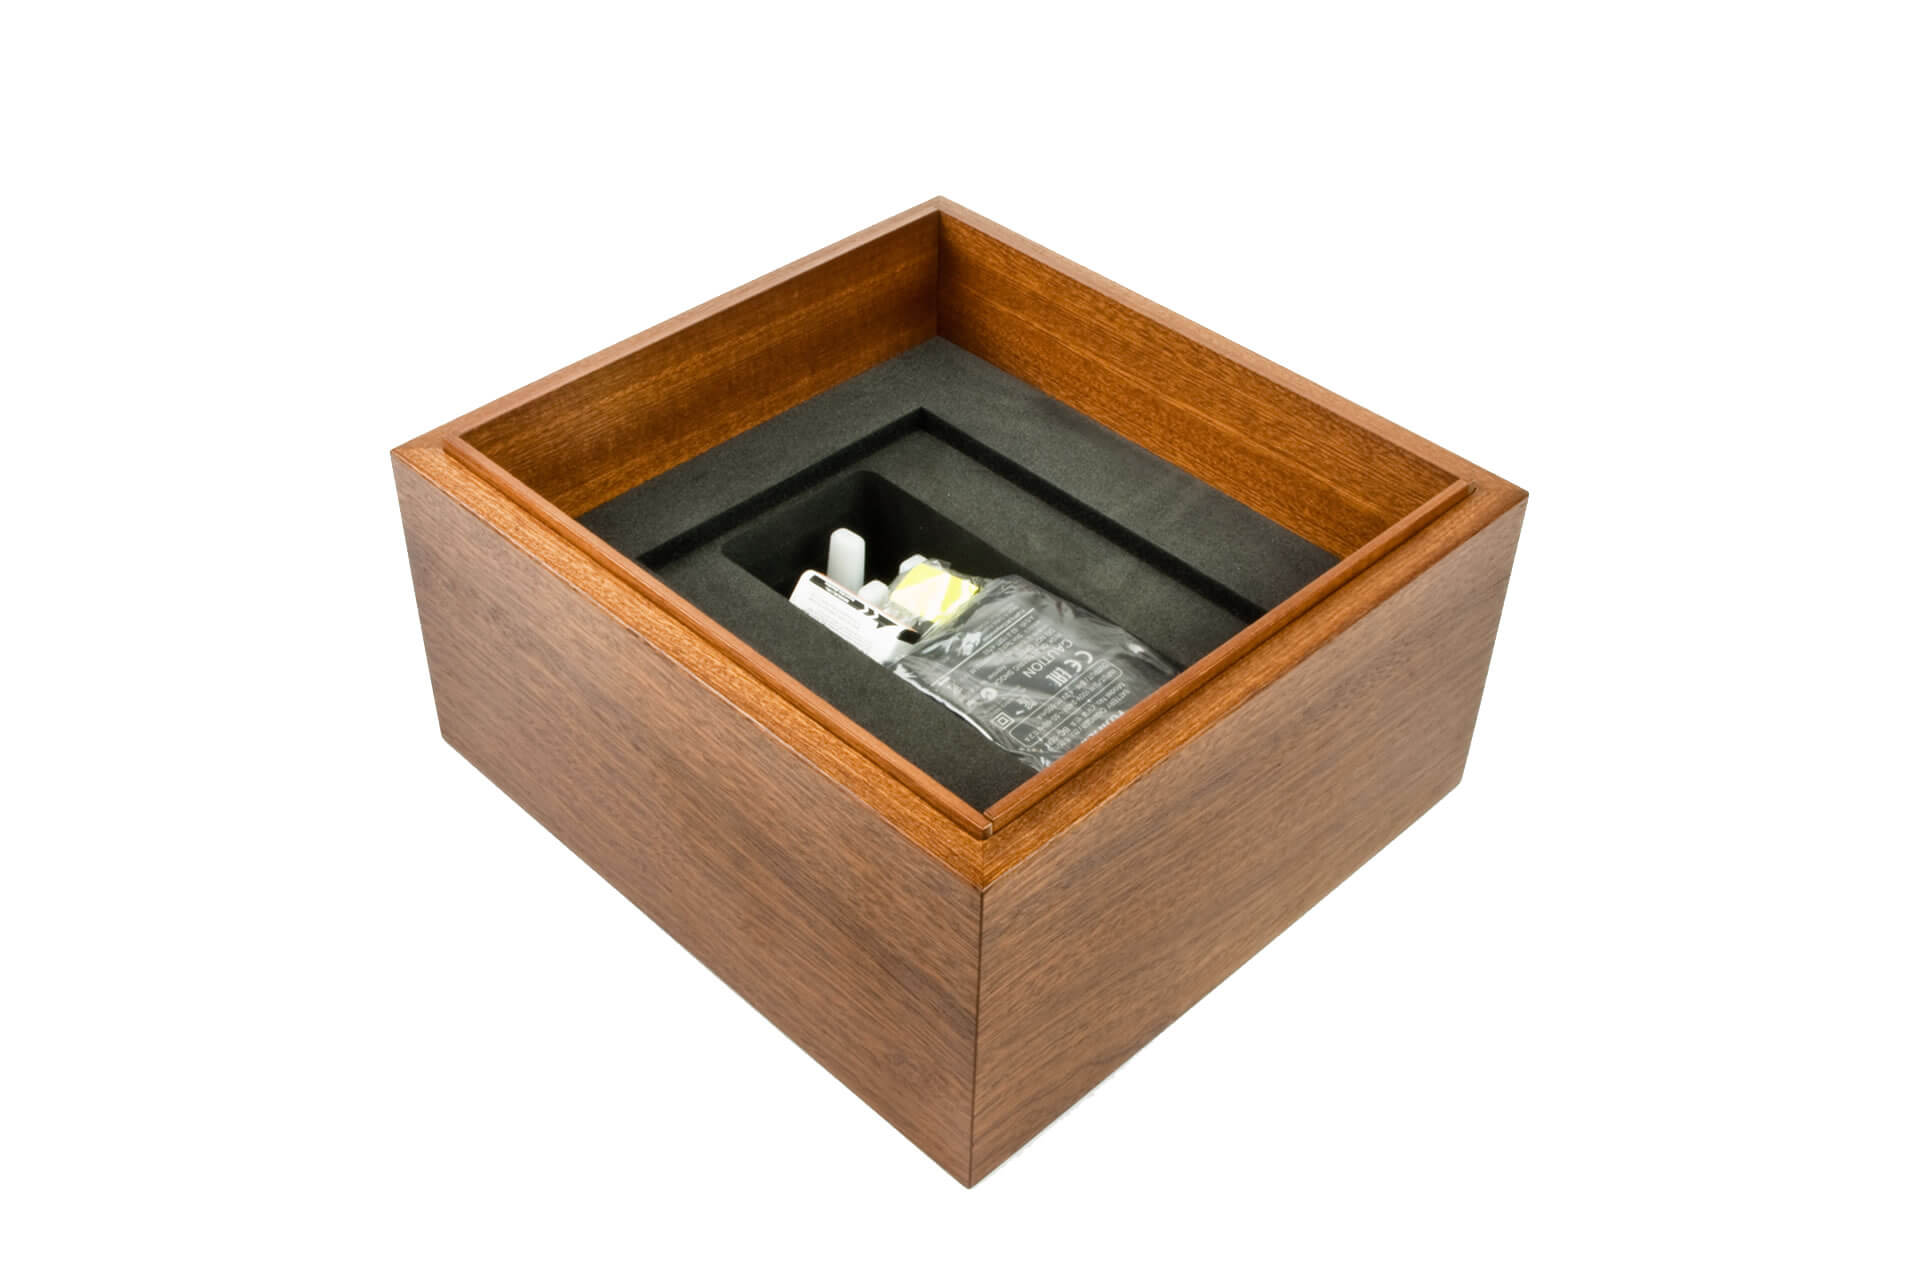 bespoke wooden packaging box lift off lid mahogany clear lacquer internal detail level 2